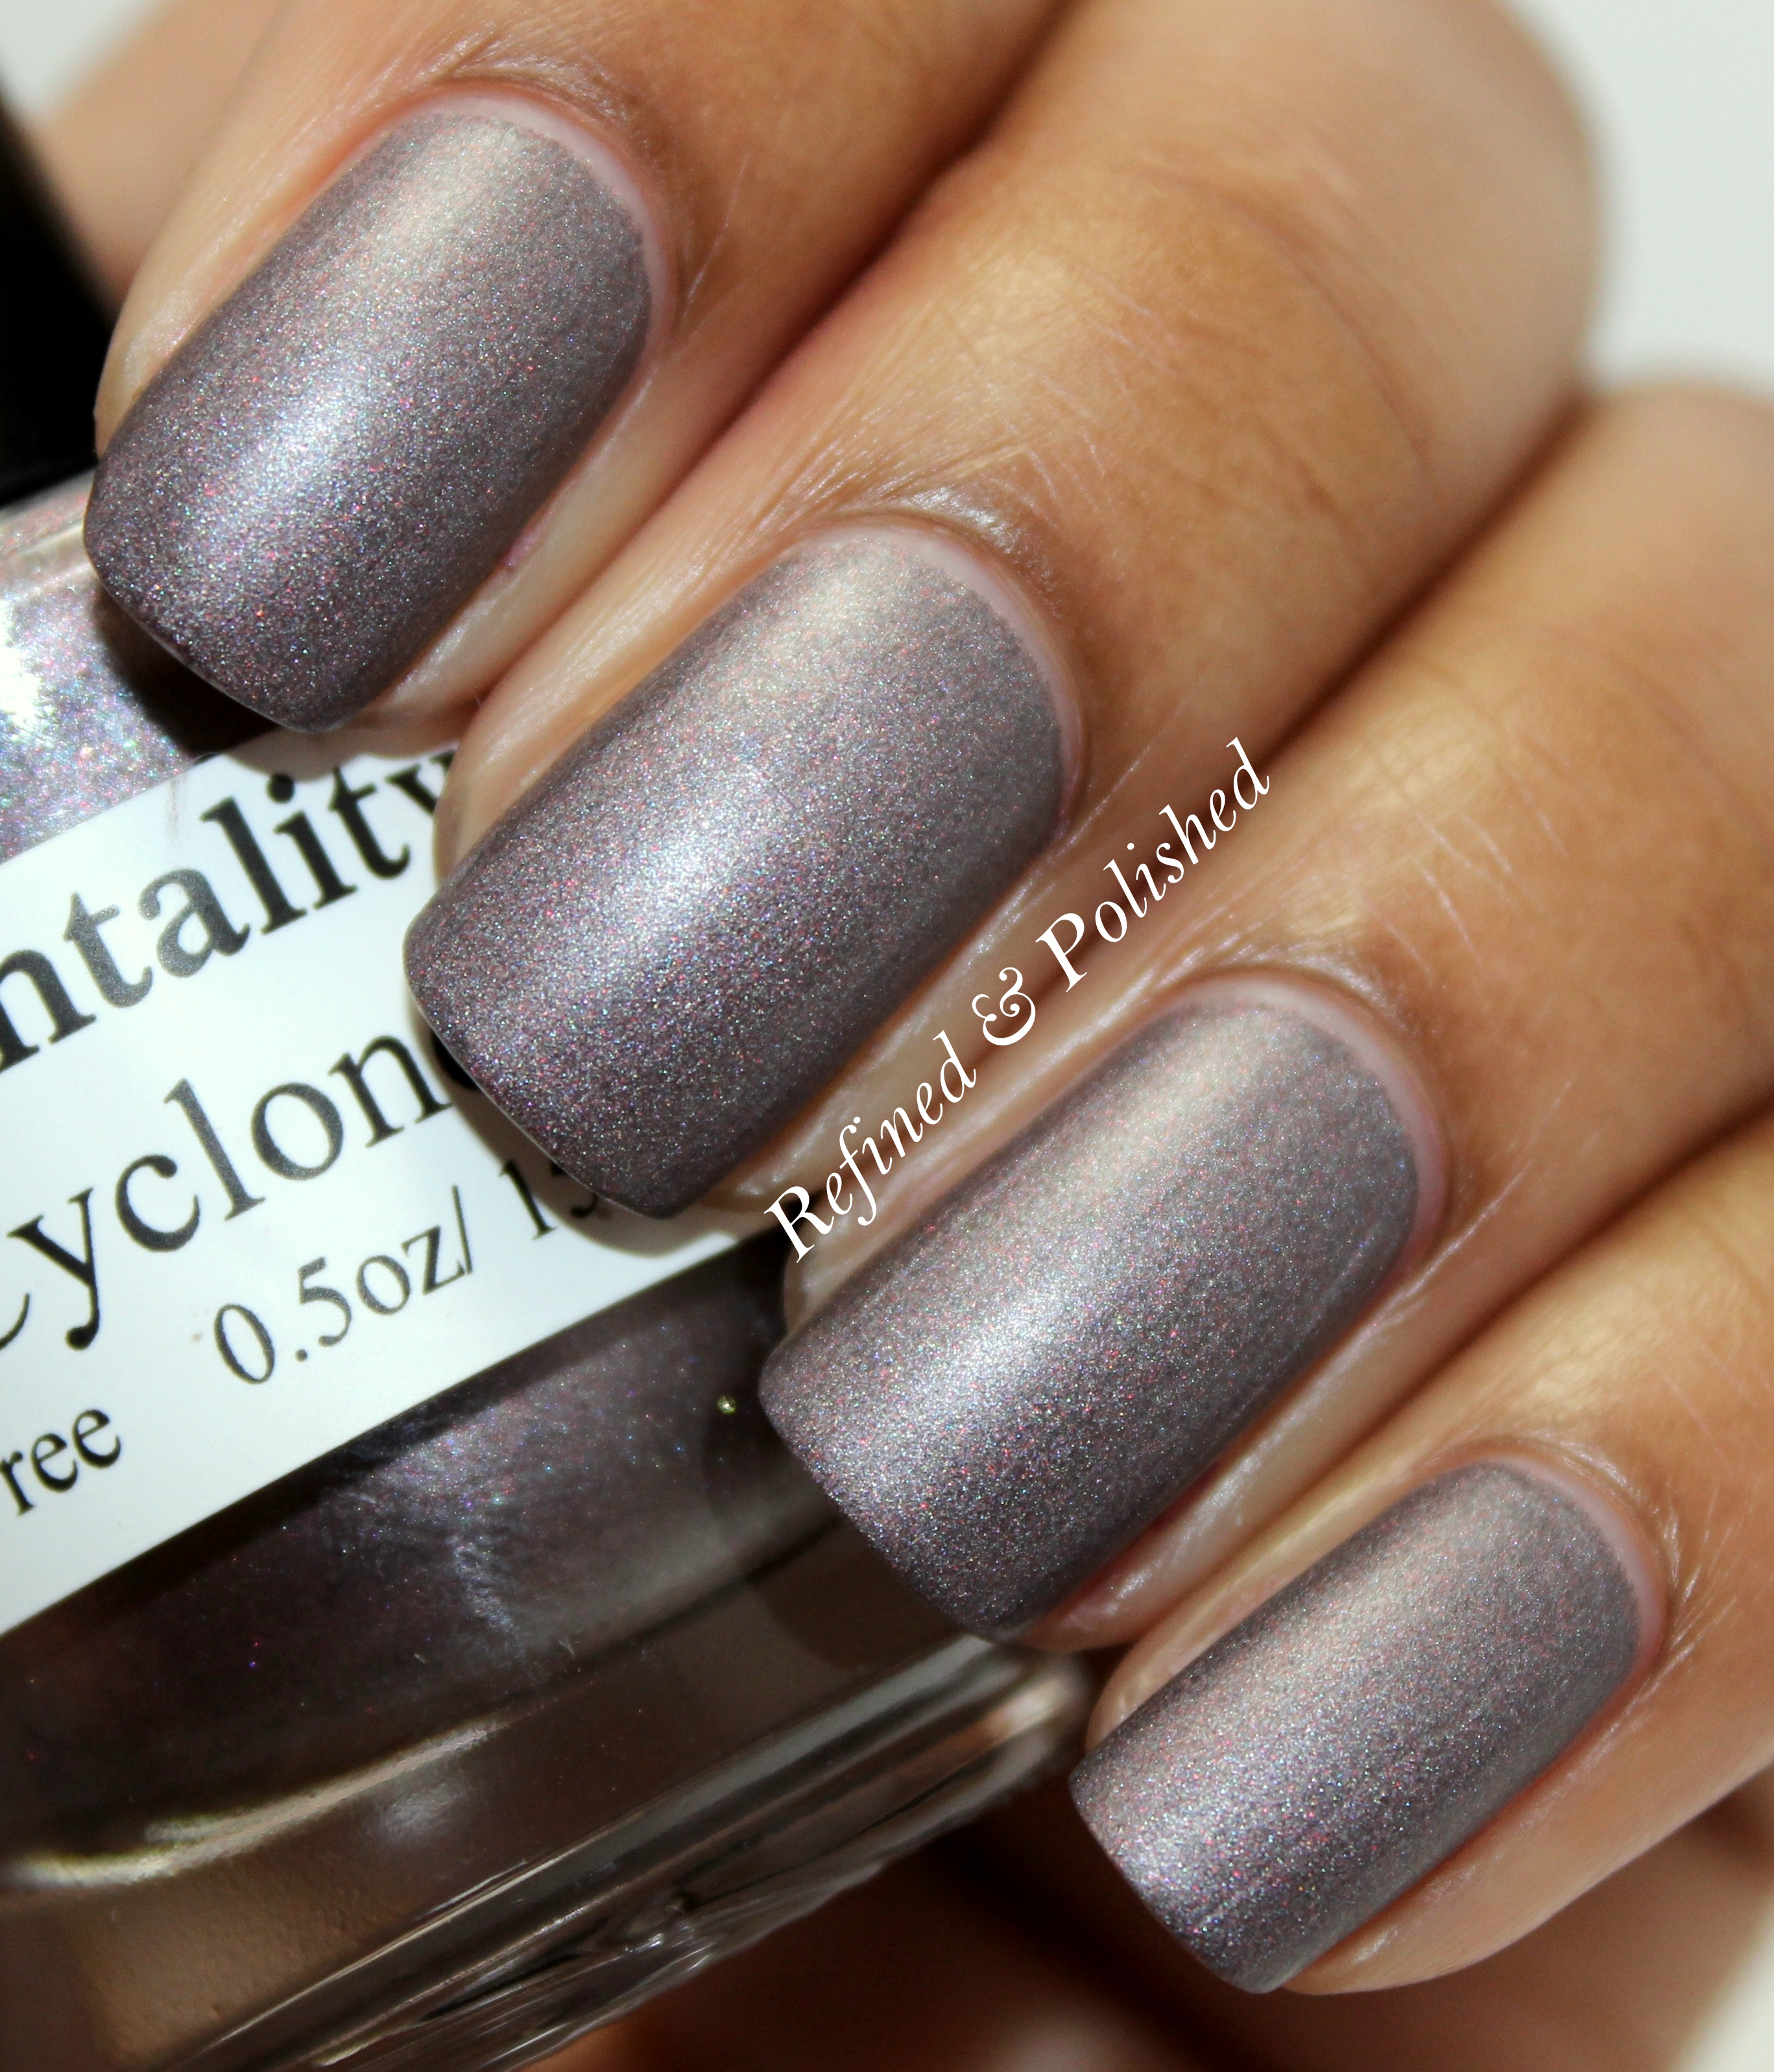 Mentality Greyscale Mattes - Refined and Polished